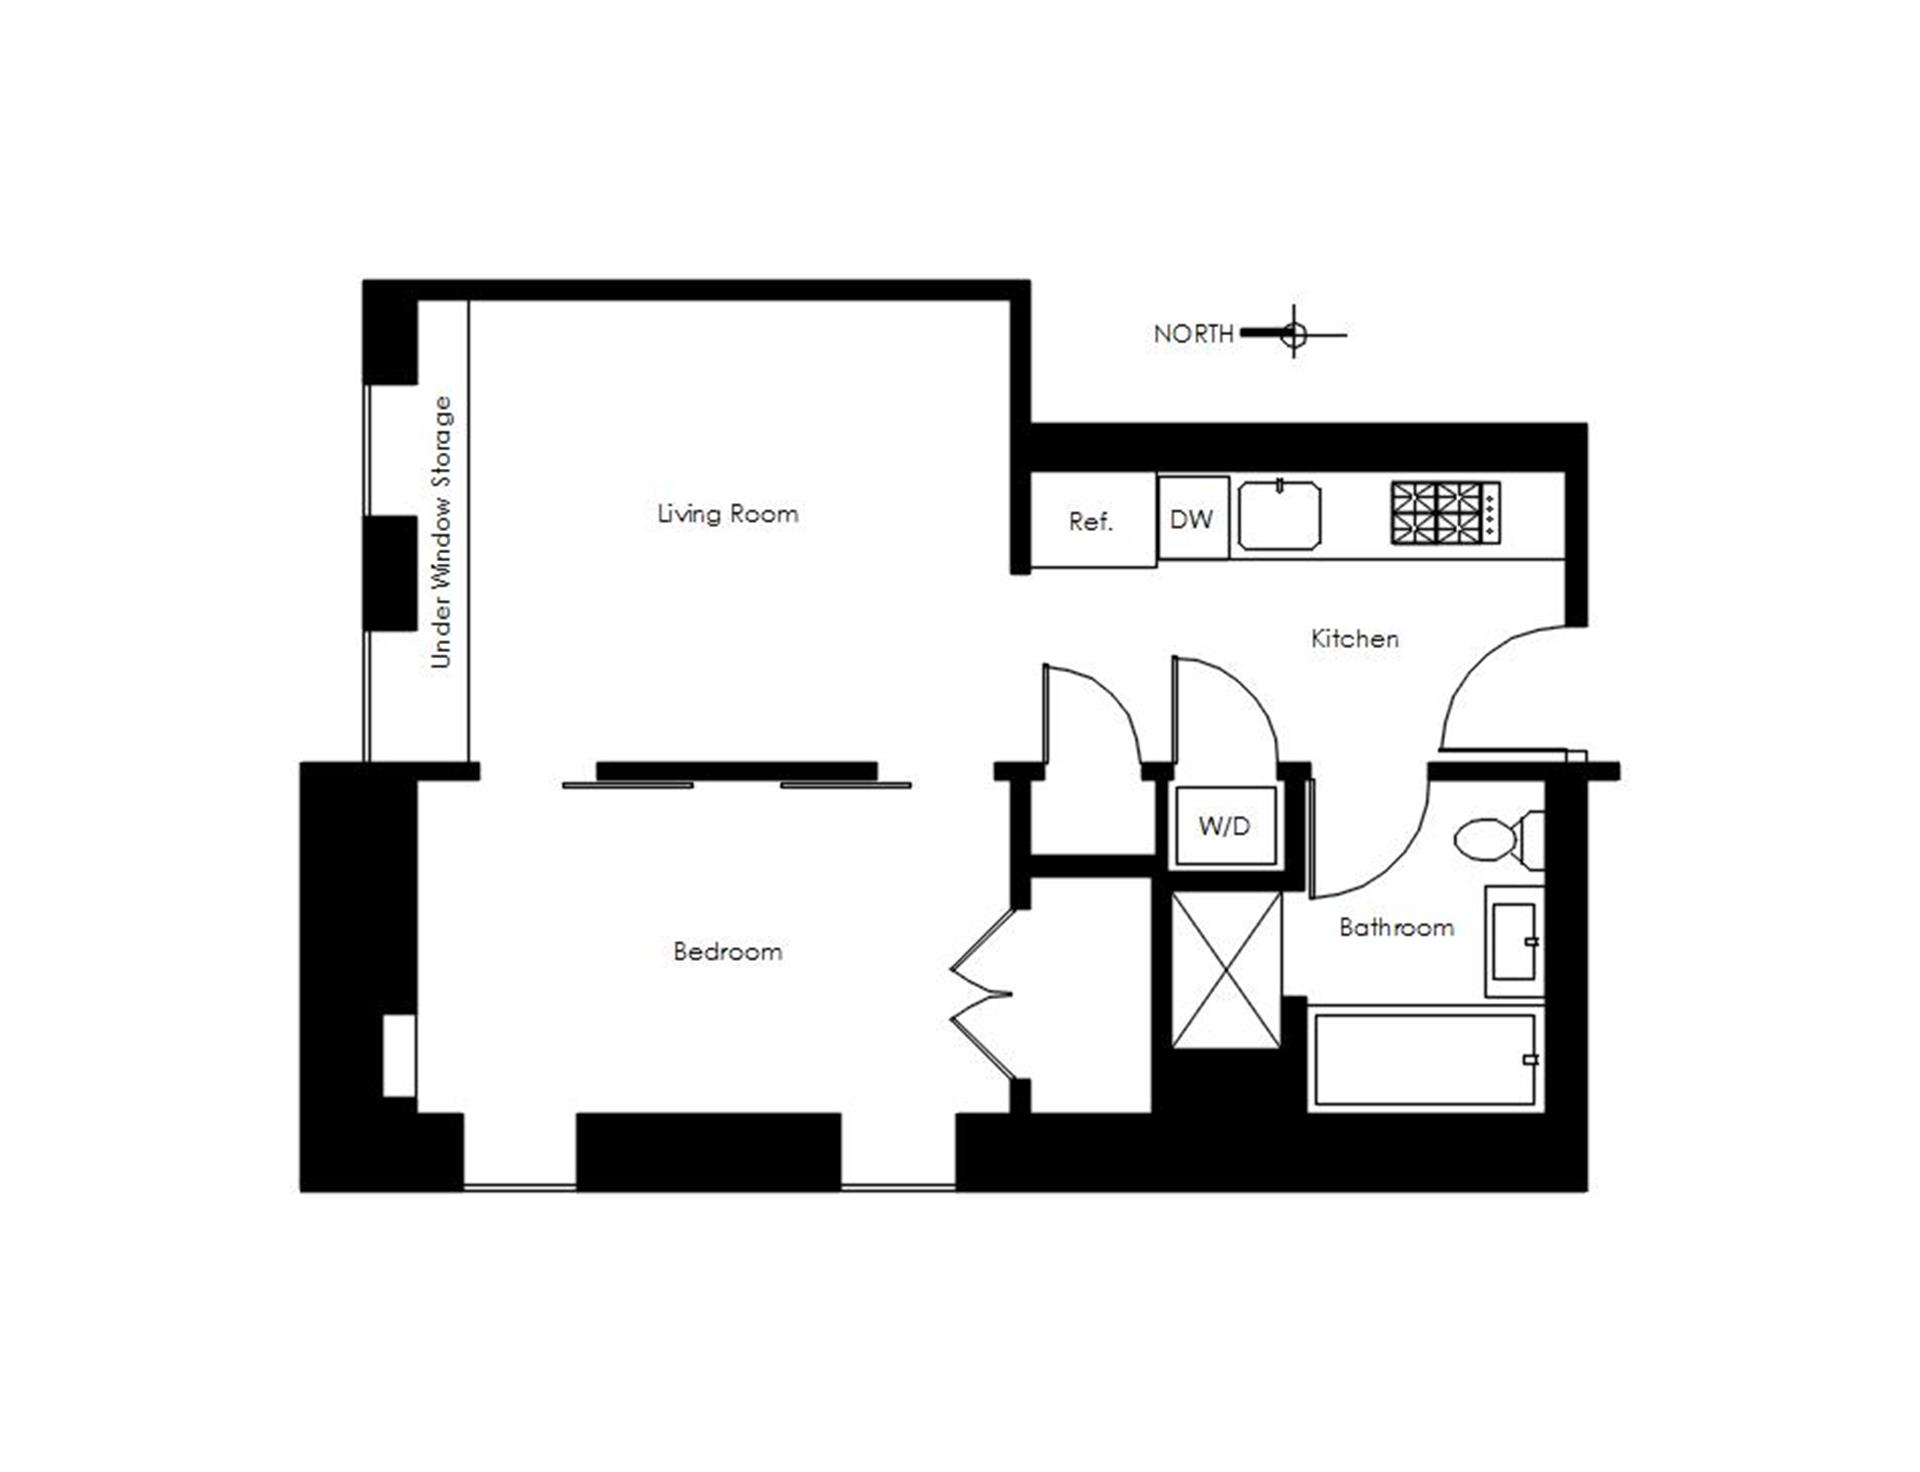 Floor plan of CARRIAGE HOUSE, 159 West 24th St, 6A - Chelsea, New York